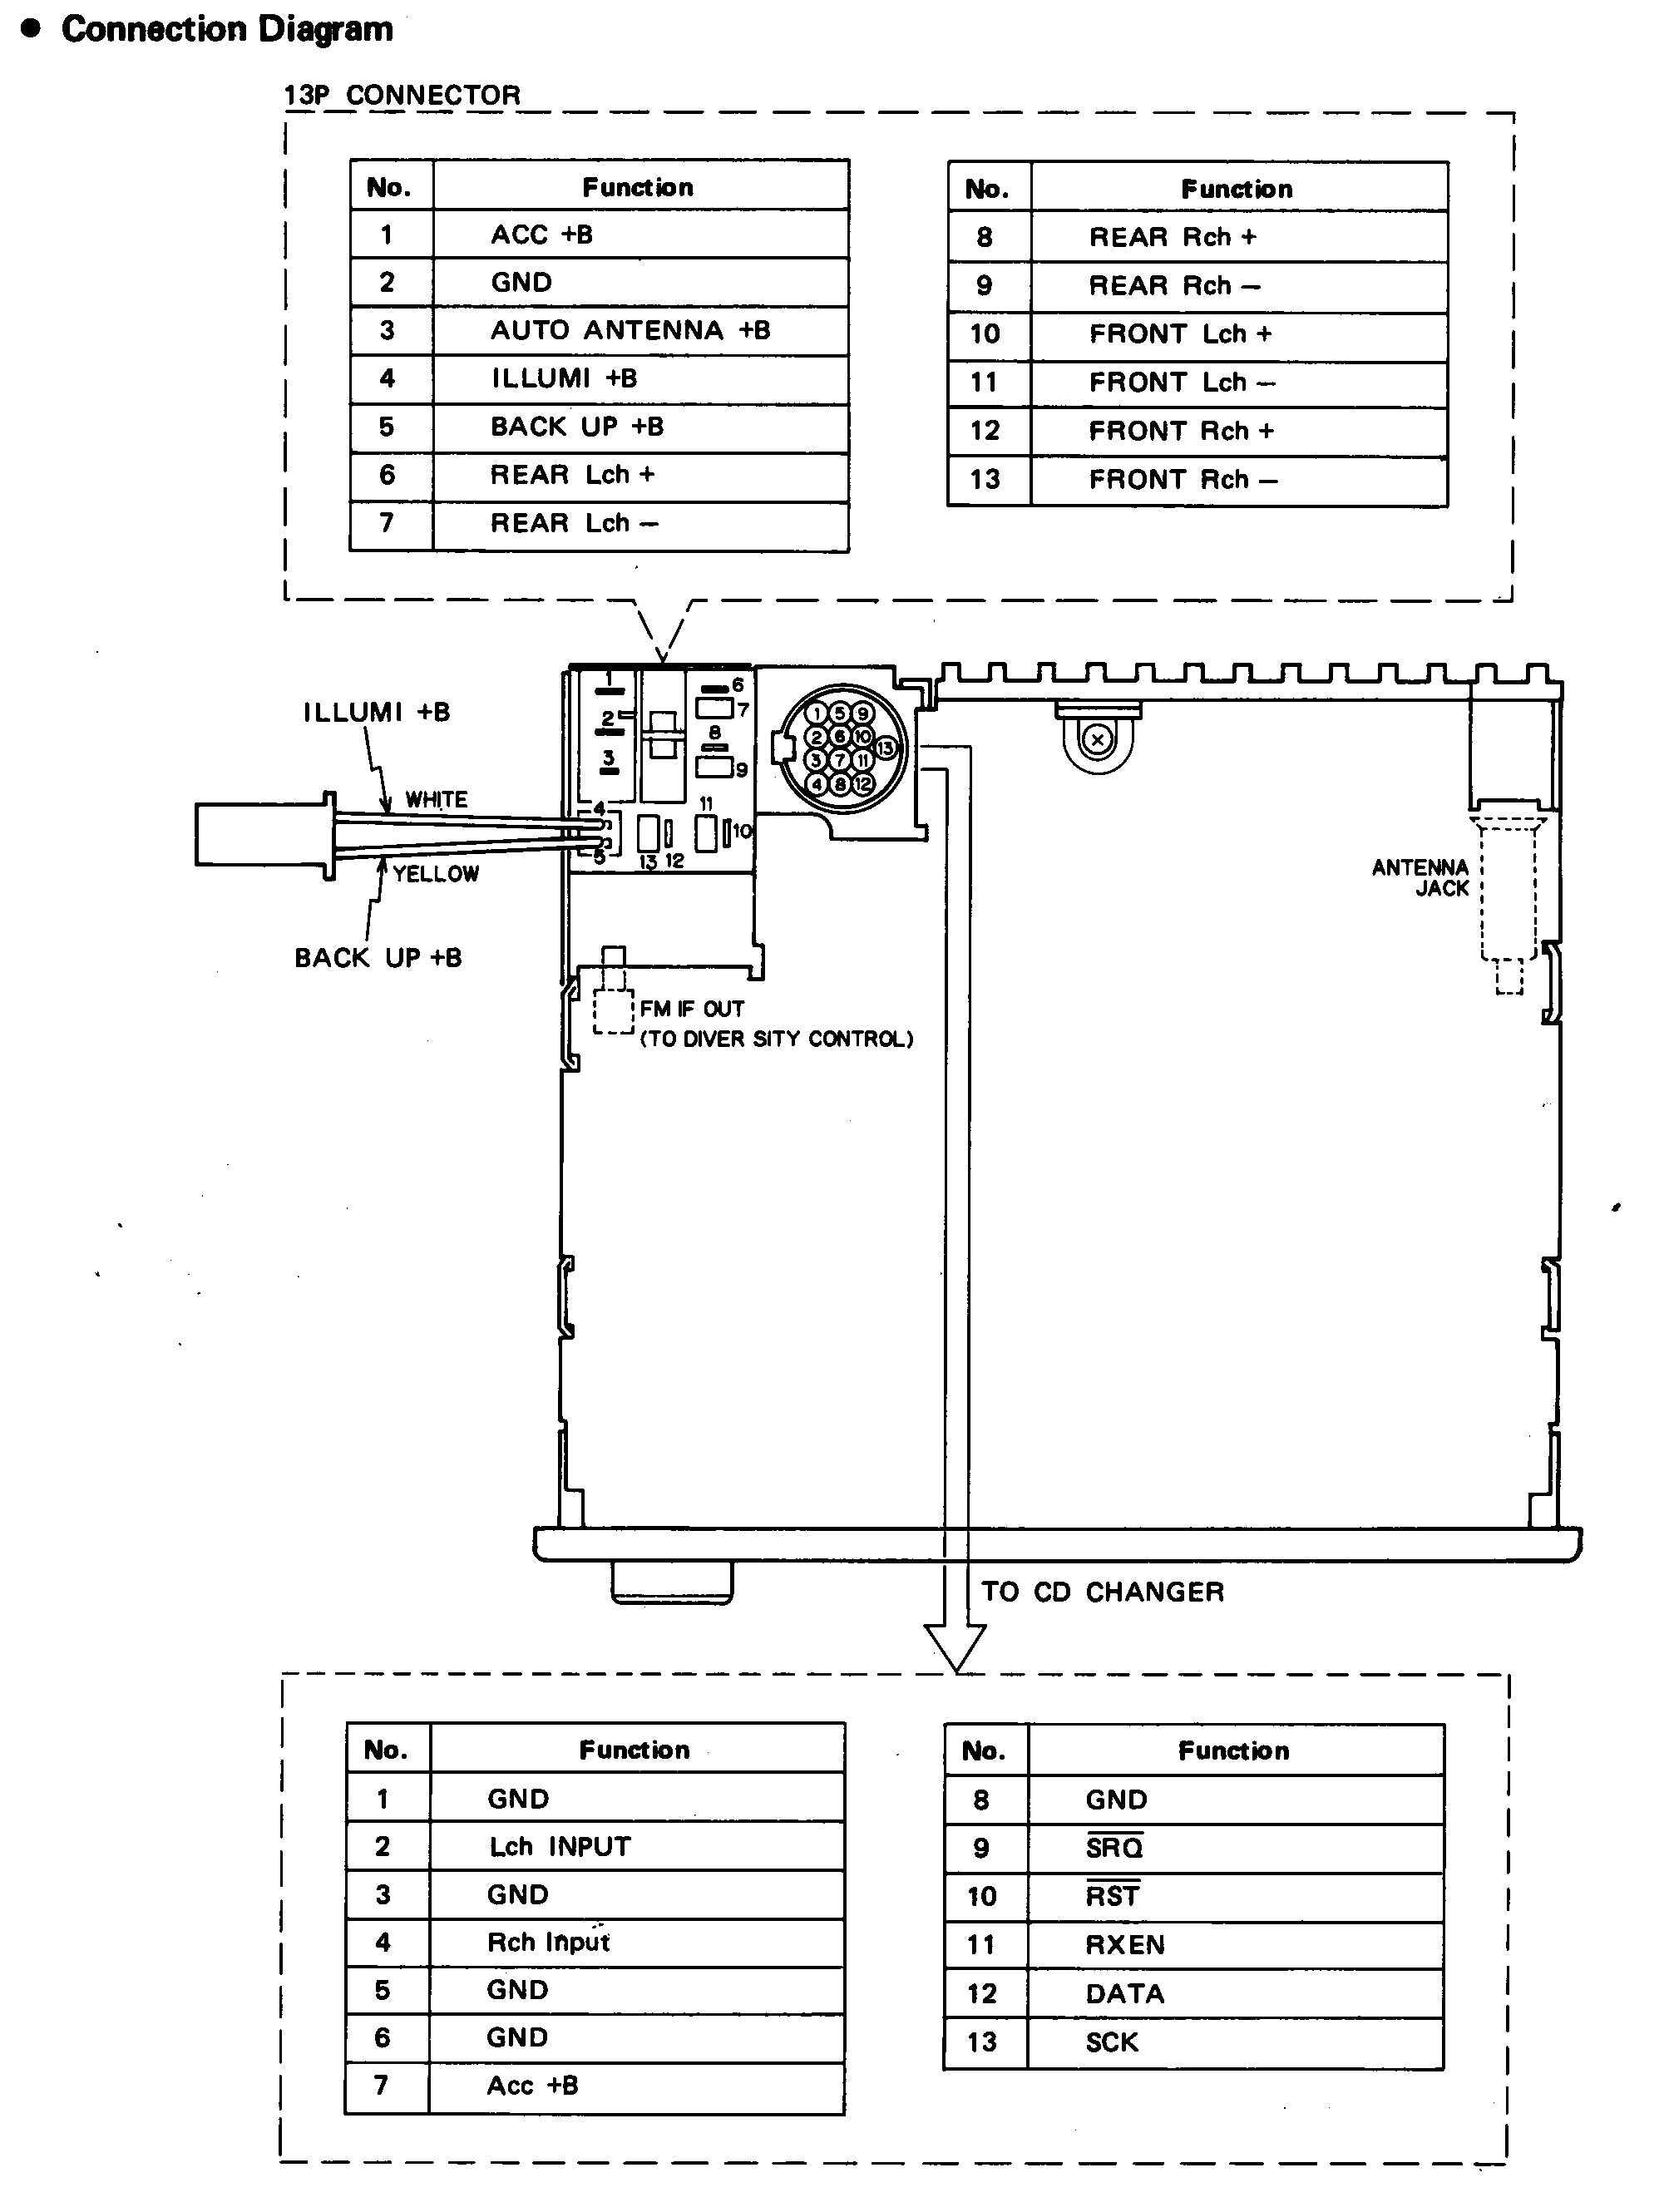 WireHarnessBMW121701 1996 jeep grand cherokee car stereo radio wiring diagram wiring 2002 jeep cherokee radio wiring diagram at fashall.co